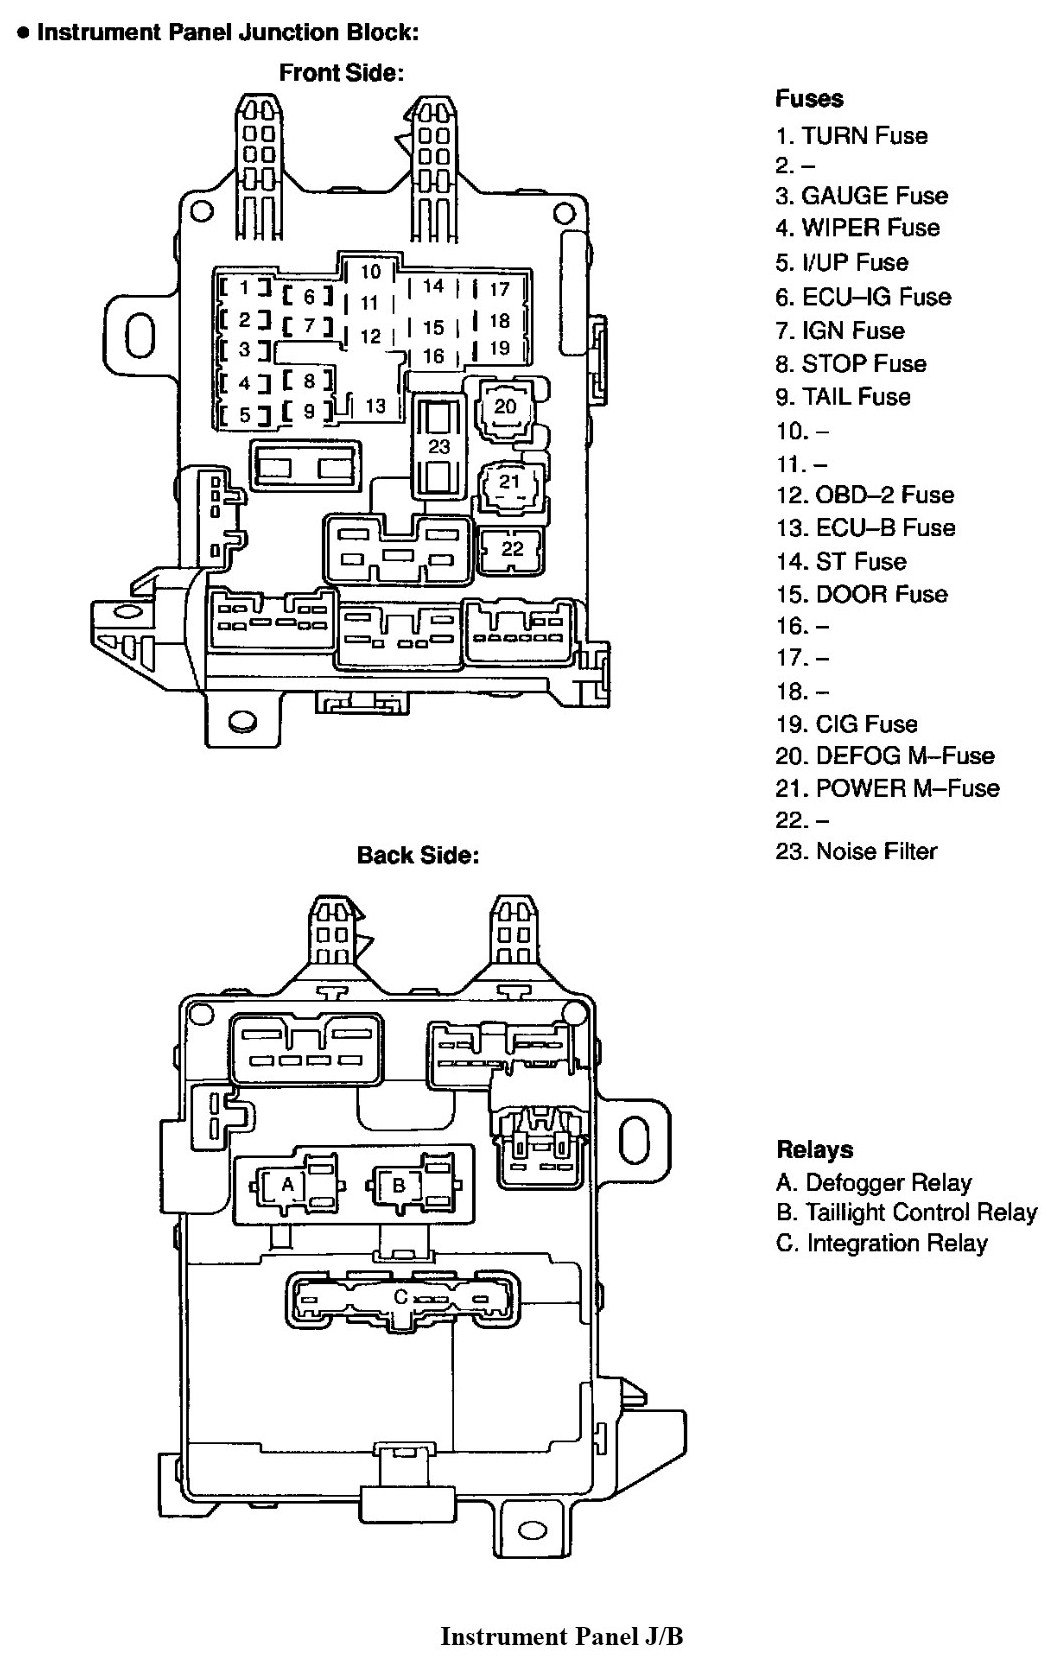 2009 Toyota Corolla Fuse Box Wiring Diagram Third Level 99 Crown Victoria 2008 Todays Ford 2007